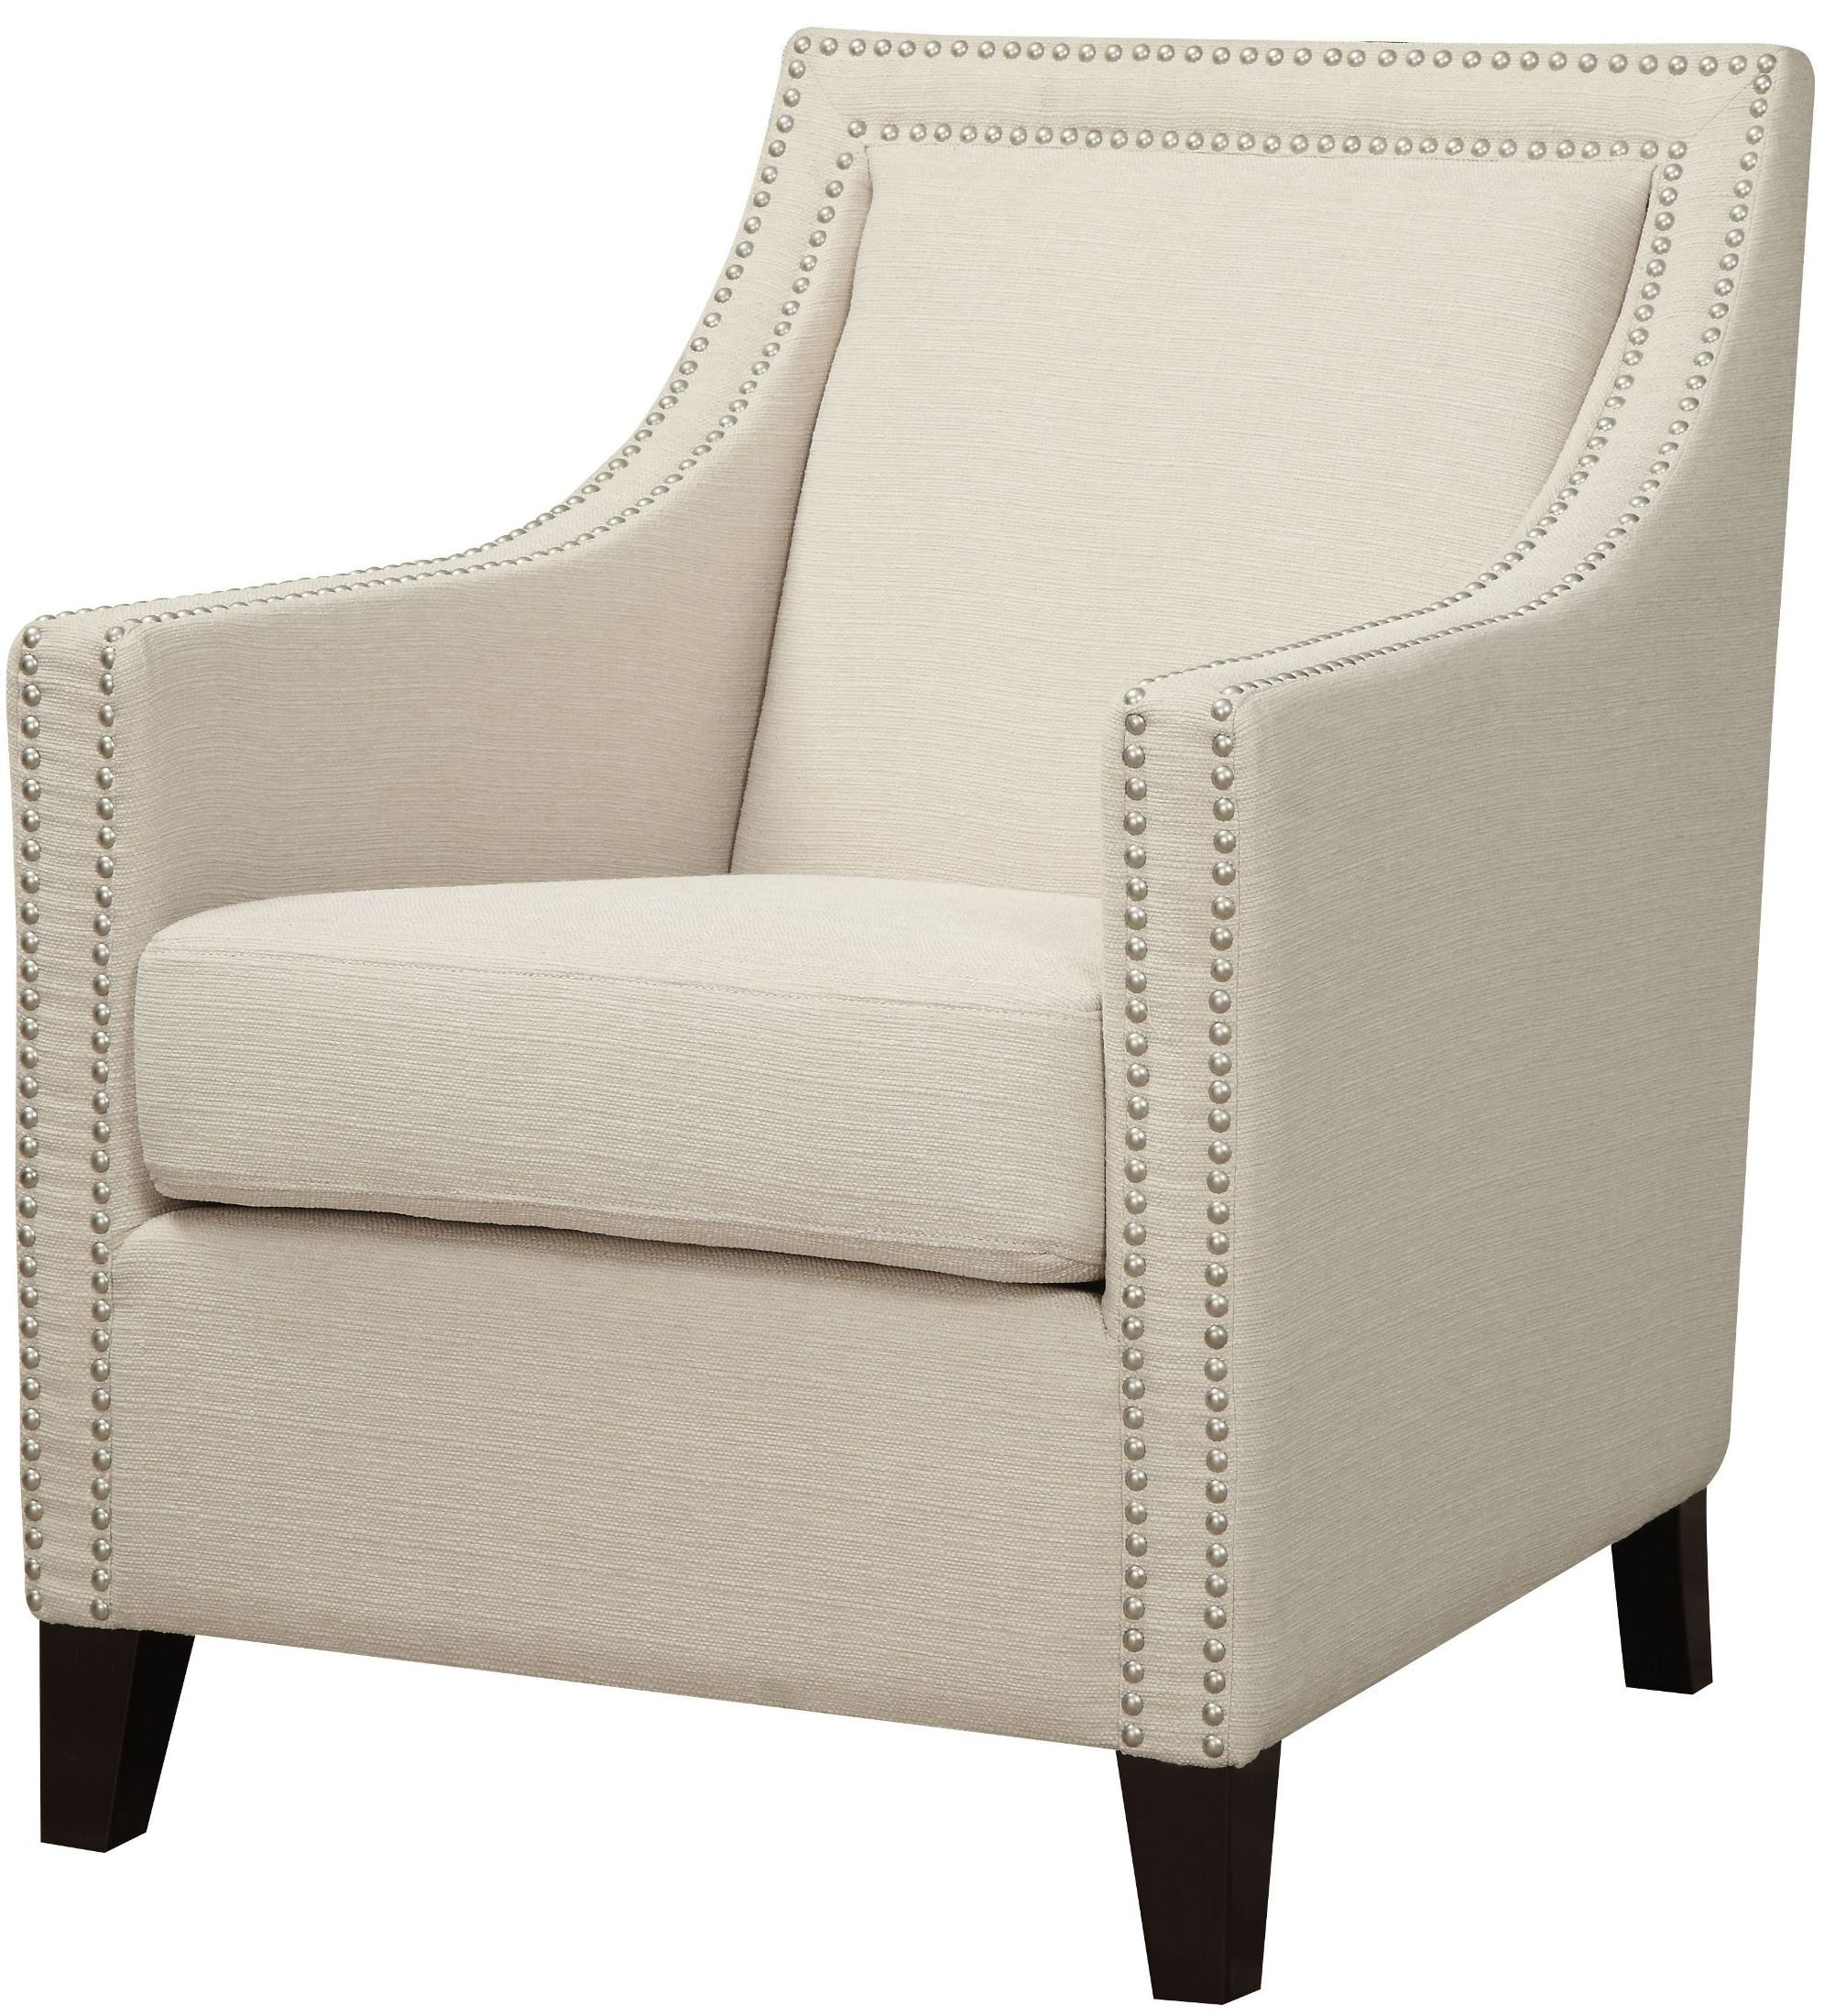 beige accent chairs stressless sale janelle chair from emerald home coleman